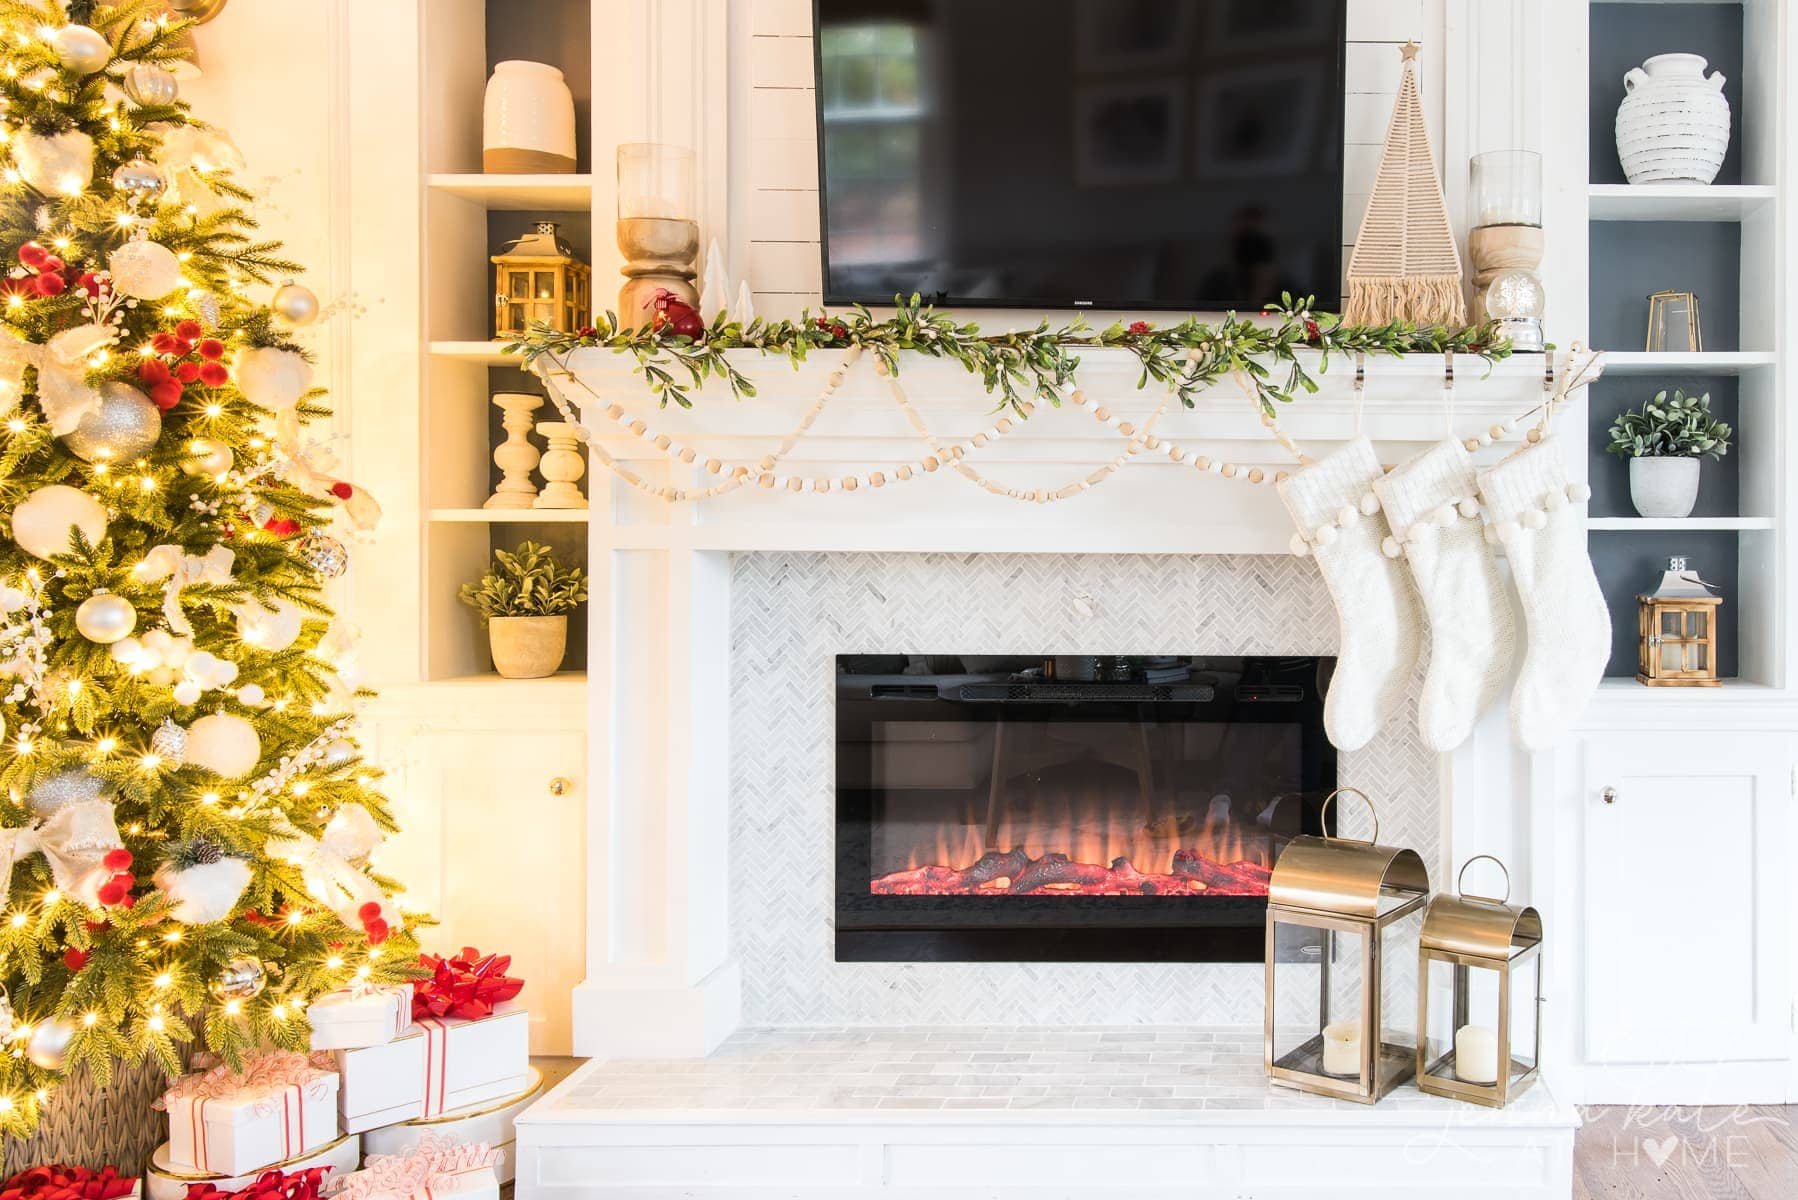 Christmas mantel decorations with faux garland beads and hanging stockings